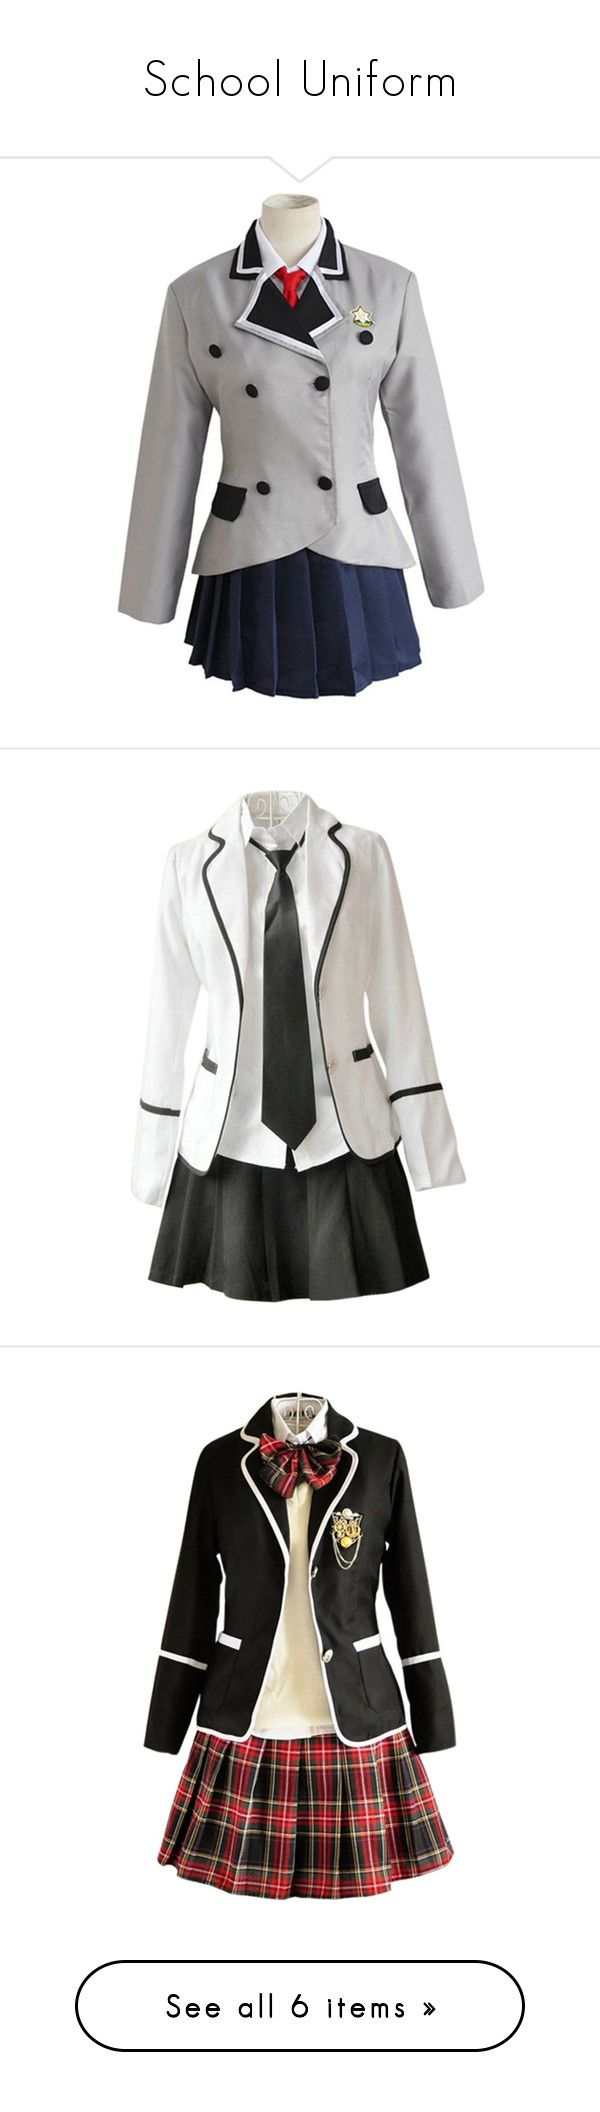 """School Uniform"" by bubble-loves-you ❤ liked on Polyvore featuring cosplay, costumes, dresses, outfits, uniform, other and uniforms"